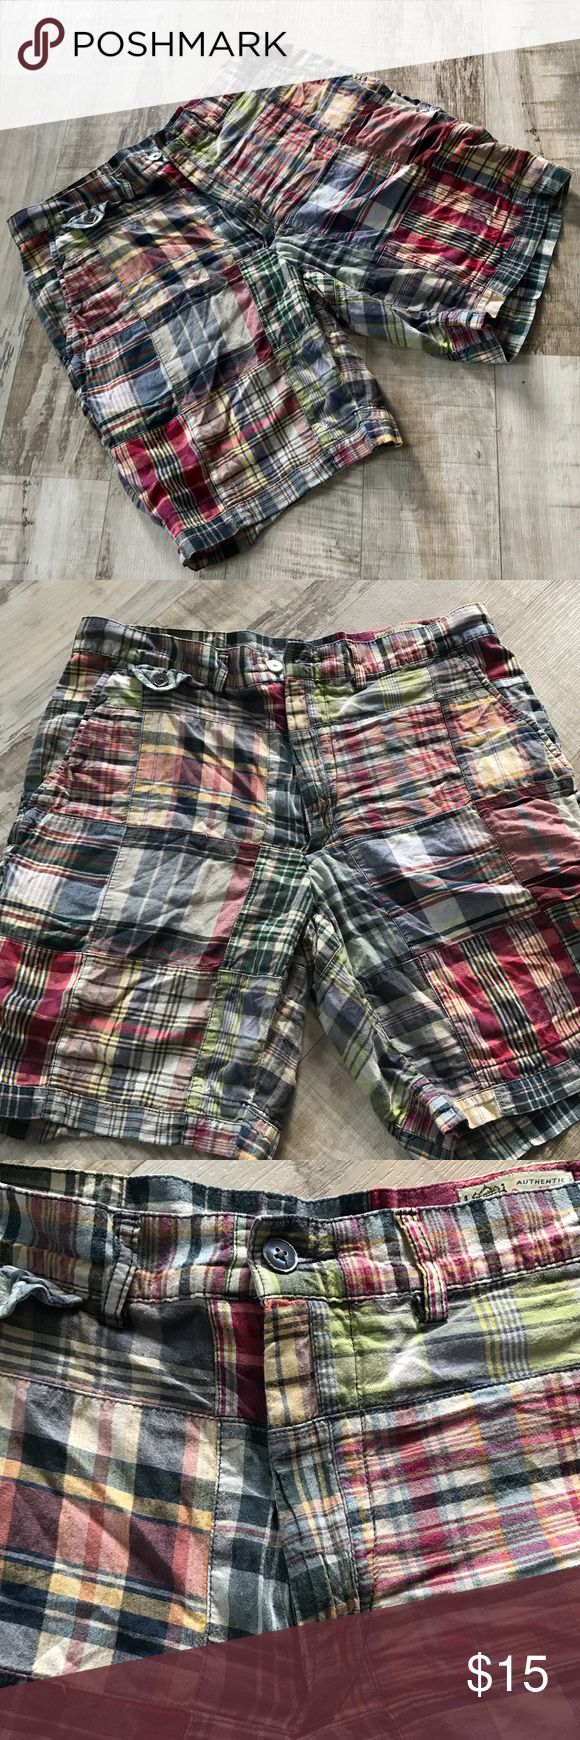 Men's Plaid Polo Ralph Lauren Shorts Men's plaid Polo Ralph Lauren shorts. Used but still in great condition, and they are very light and soft! Size 32. Polo by Ralph Lauren Shorts